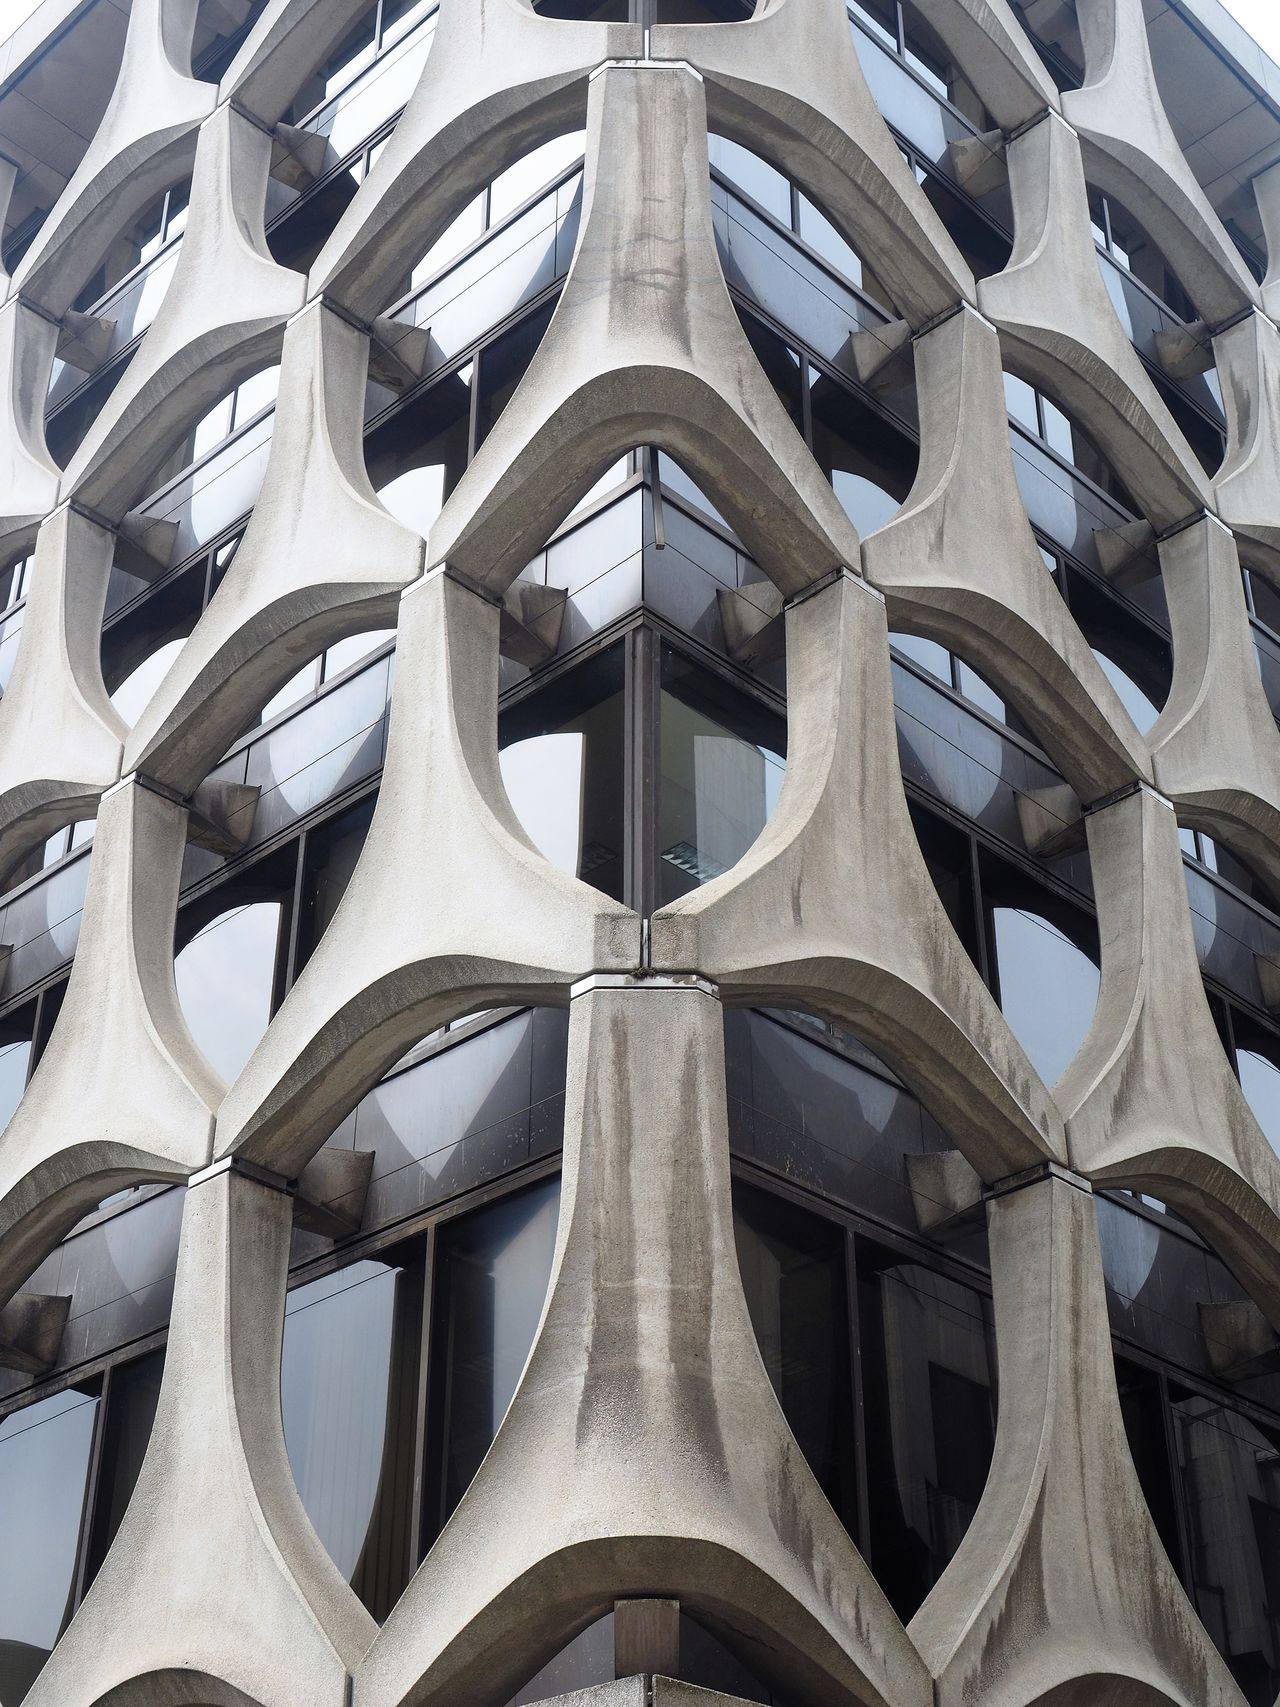 Architectural Feature Architecture Backgrounds Best July Photo Brussels Building Built Structure City City Life Day Design Façade Full Frame Geometric Shape In A Row Low Angle View Modern No People Office Building Outdoors Part Of Repetition Sky Tall - High Travel Destinations